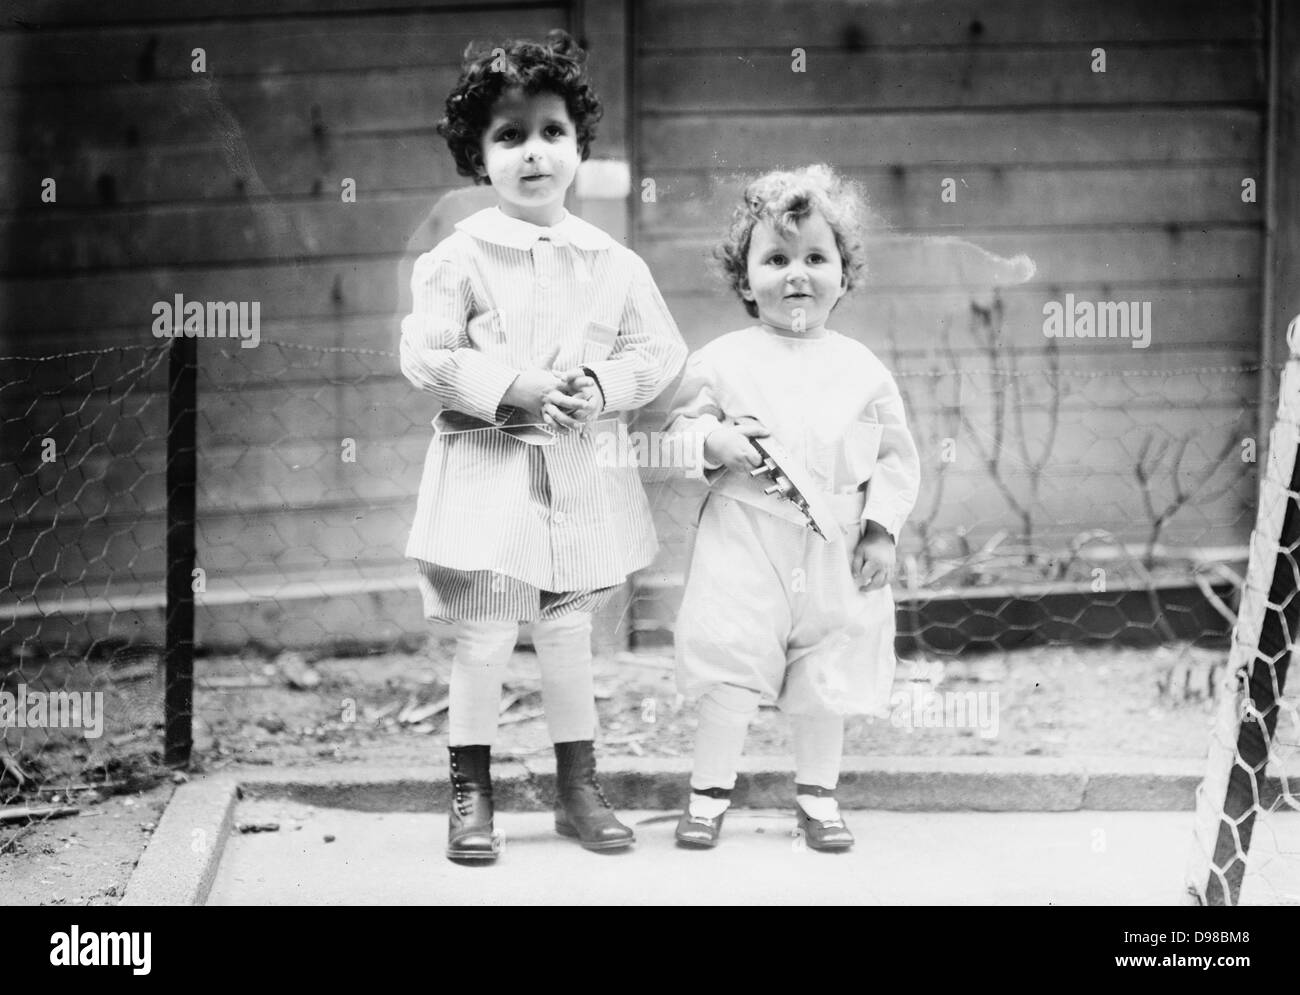 Louis & Lola ? - from Titanic Creator(s): Bain News Service, publisher. Date created / published [1912 April] - Stock Image